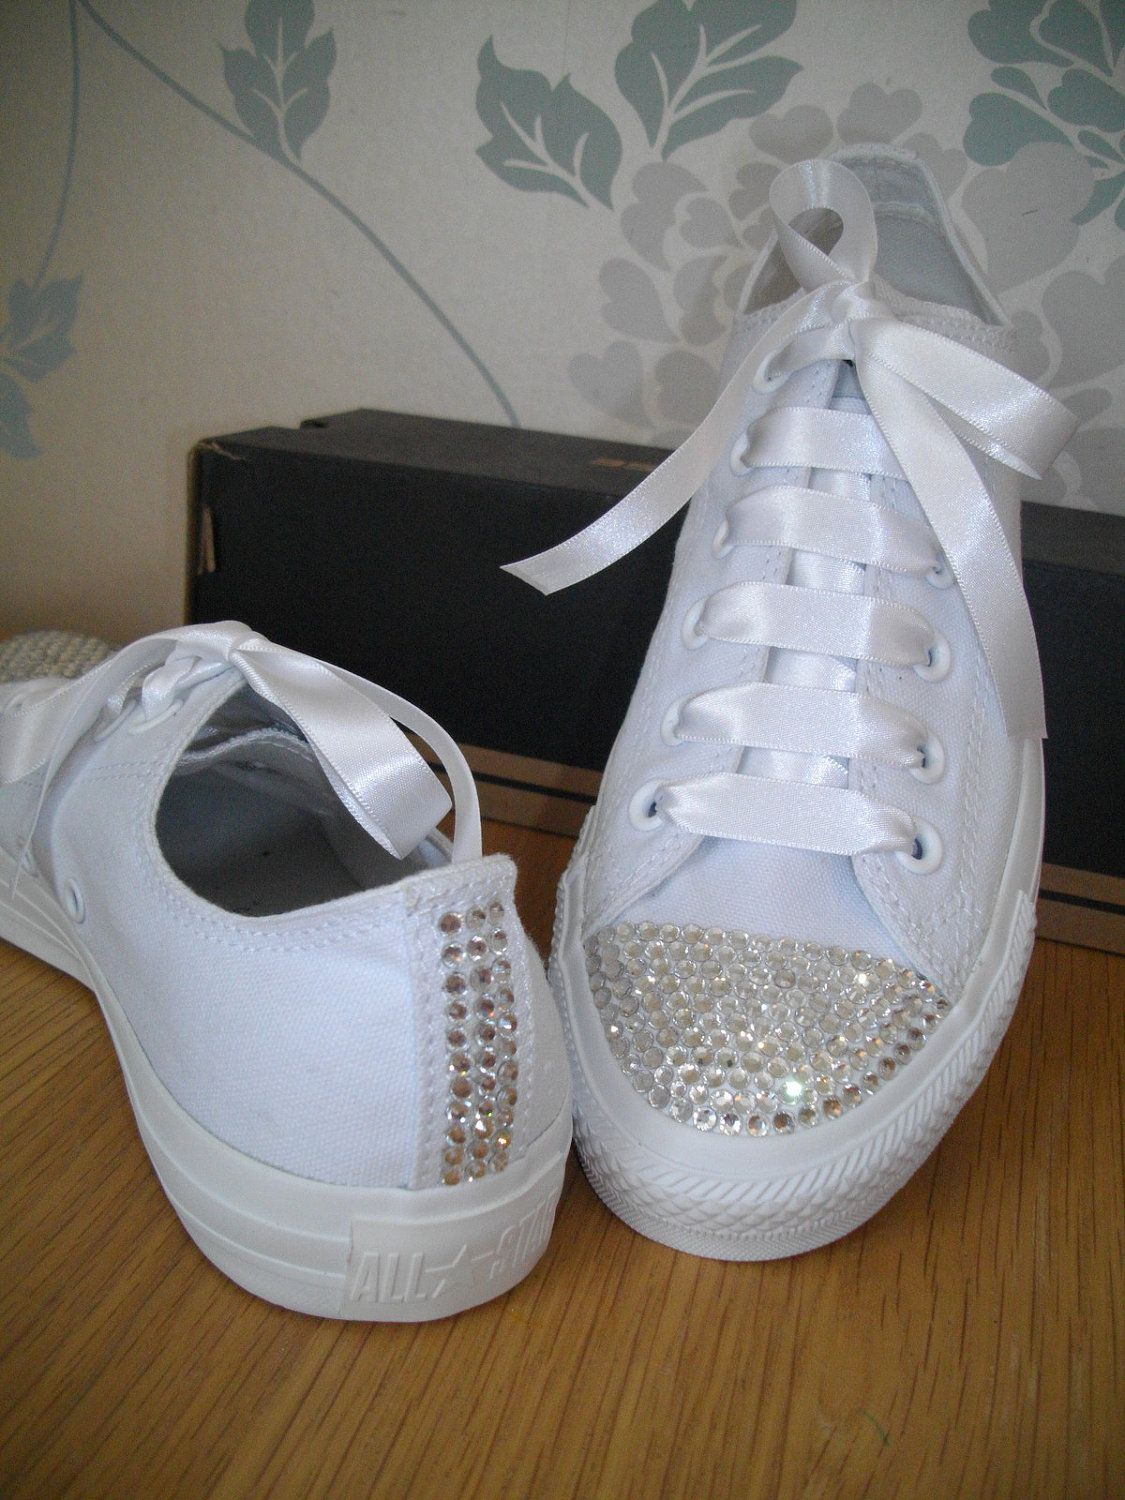 8ae9d479ac75 Adults White Leather SWAROVSKI crystal converse all sizes available from  size 4UK (eu37). £70.00